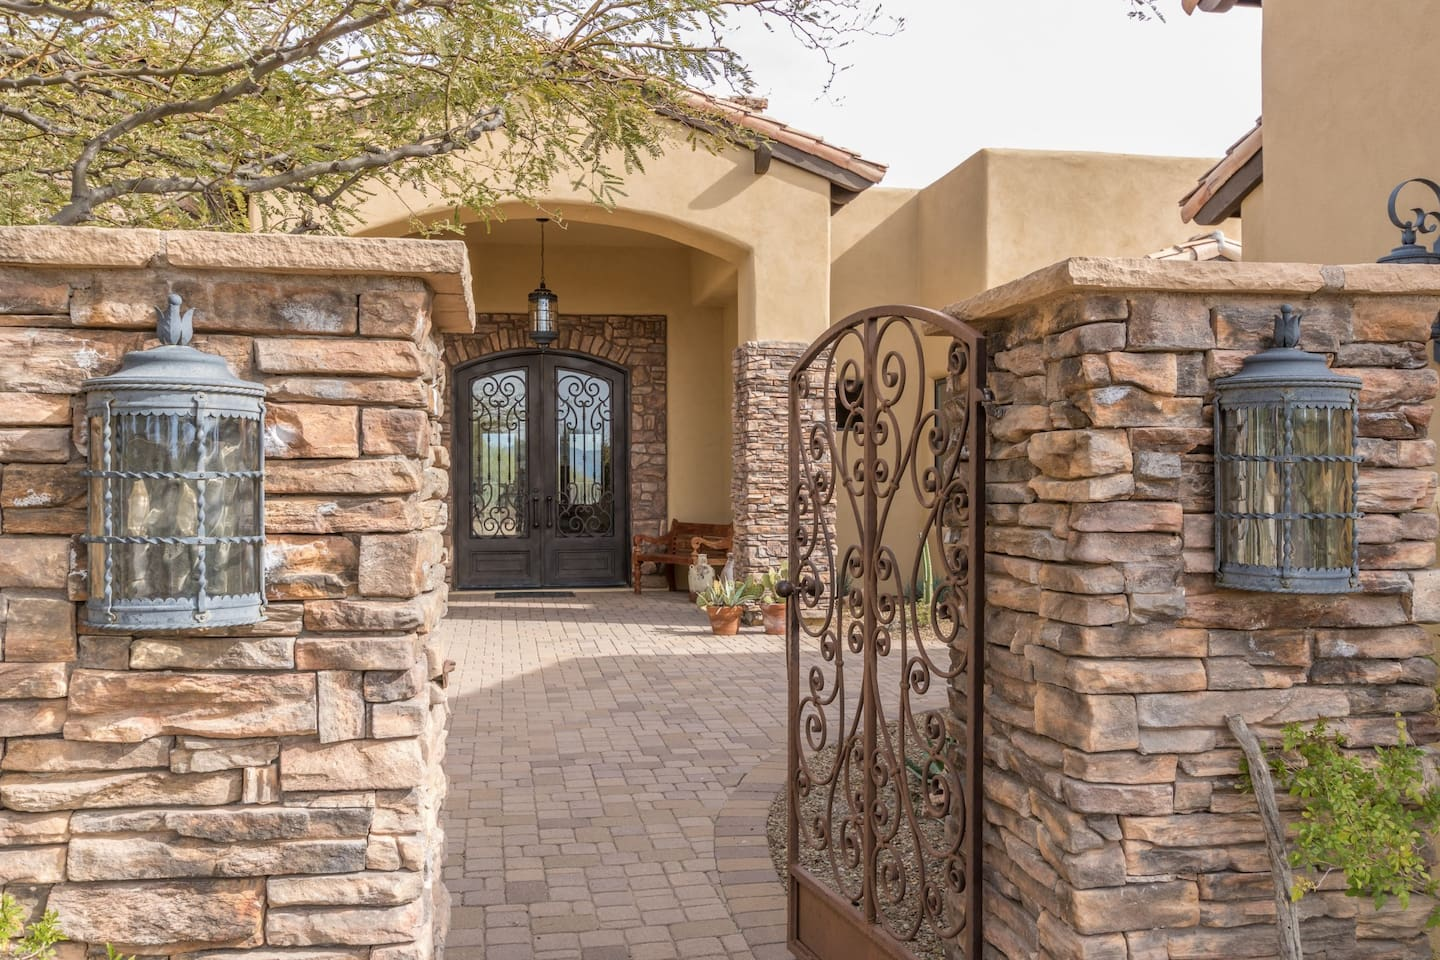 Spectacular front courtyard entry which leads to the Casita's private entry through the courtyard. You will feel transformed into a gorgeous desert quiet oasis as you enter the heavy metal gate. Casita is detached guest house with private entry.